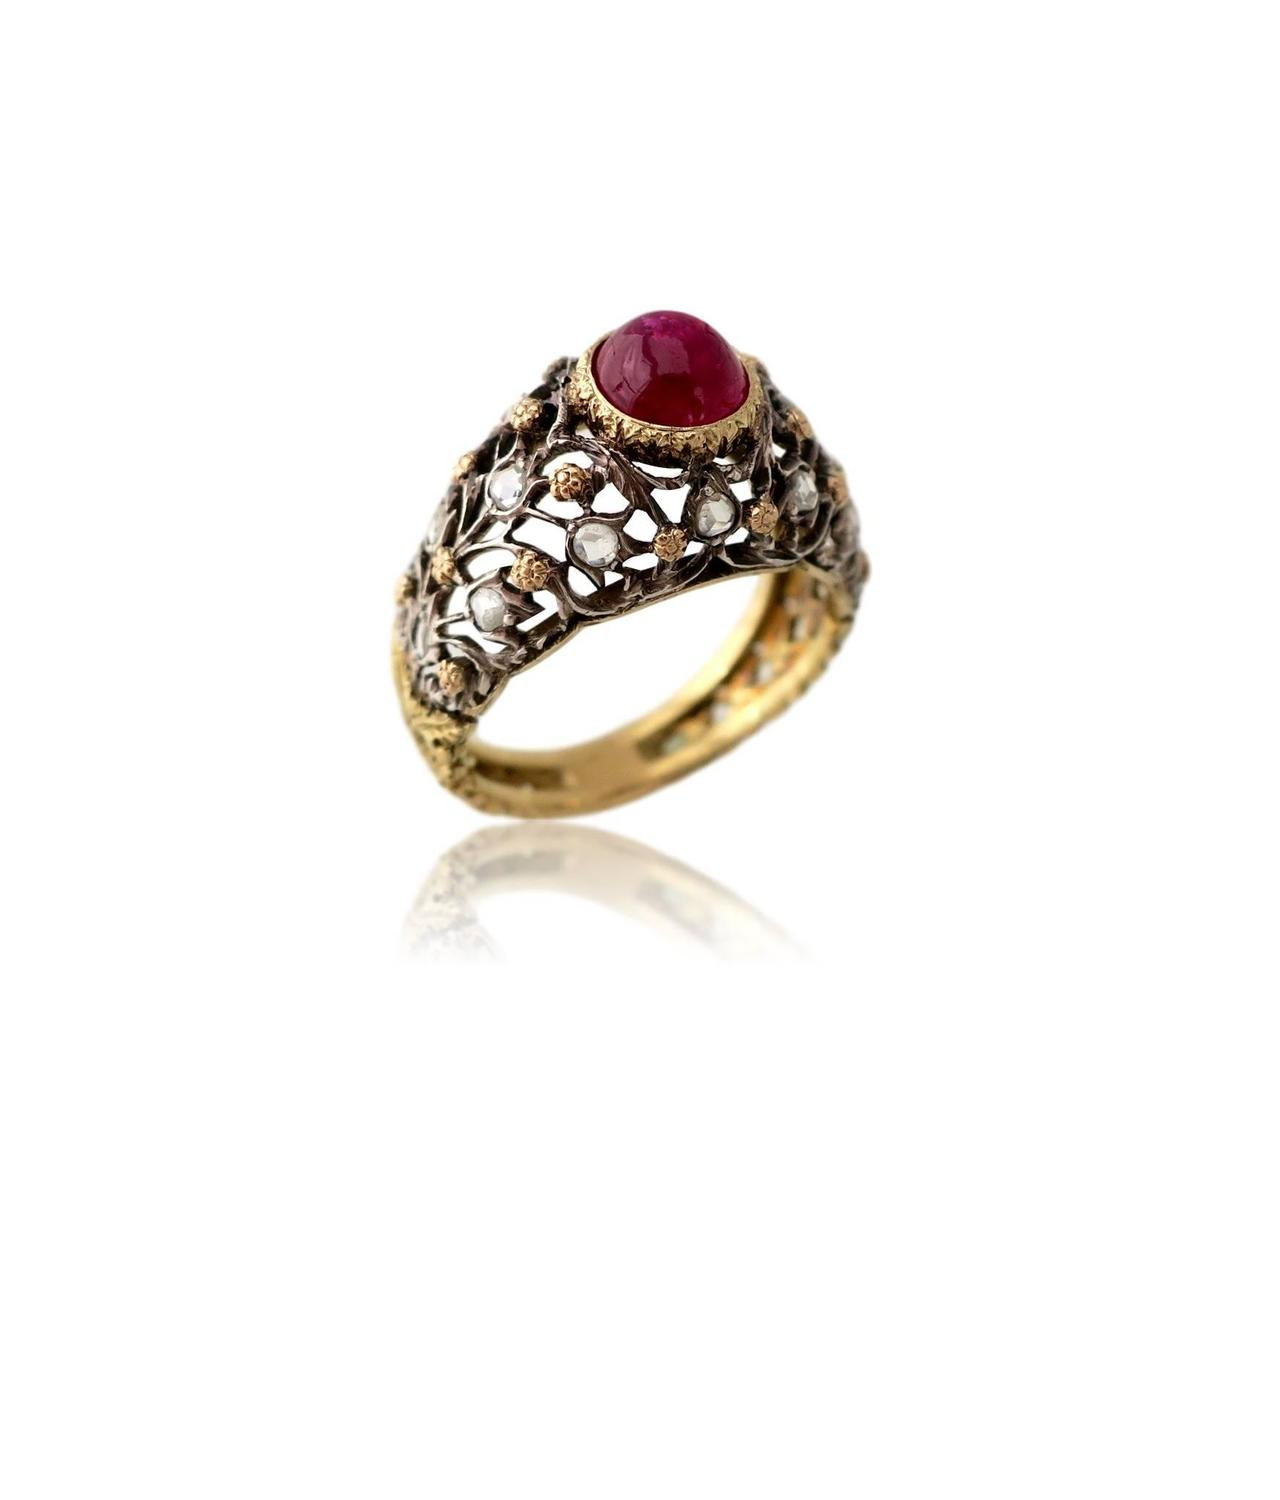 buccellti gold and ruby ring circa 1960